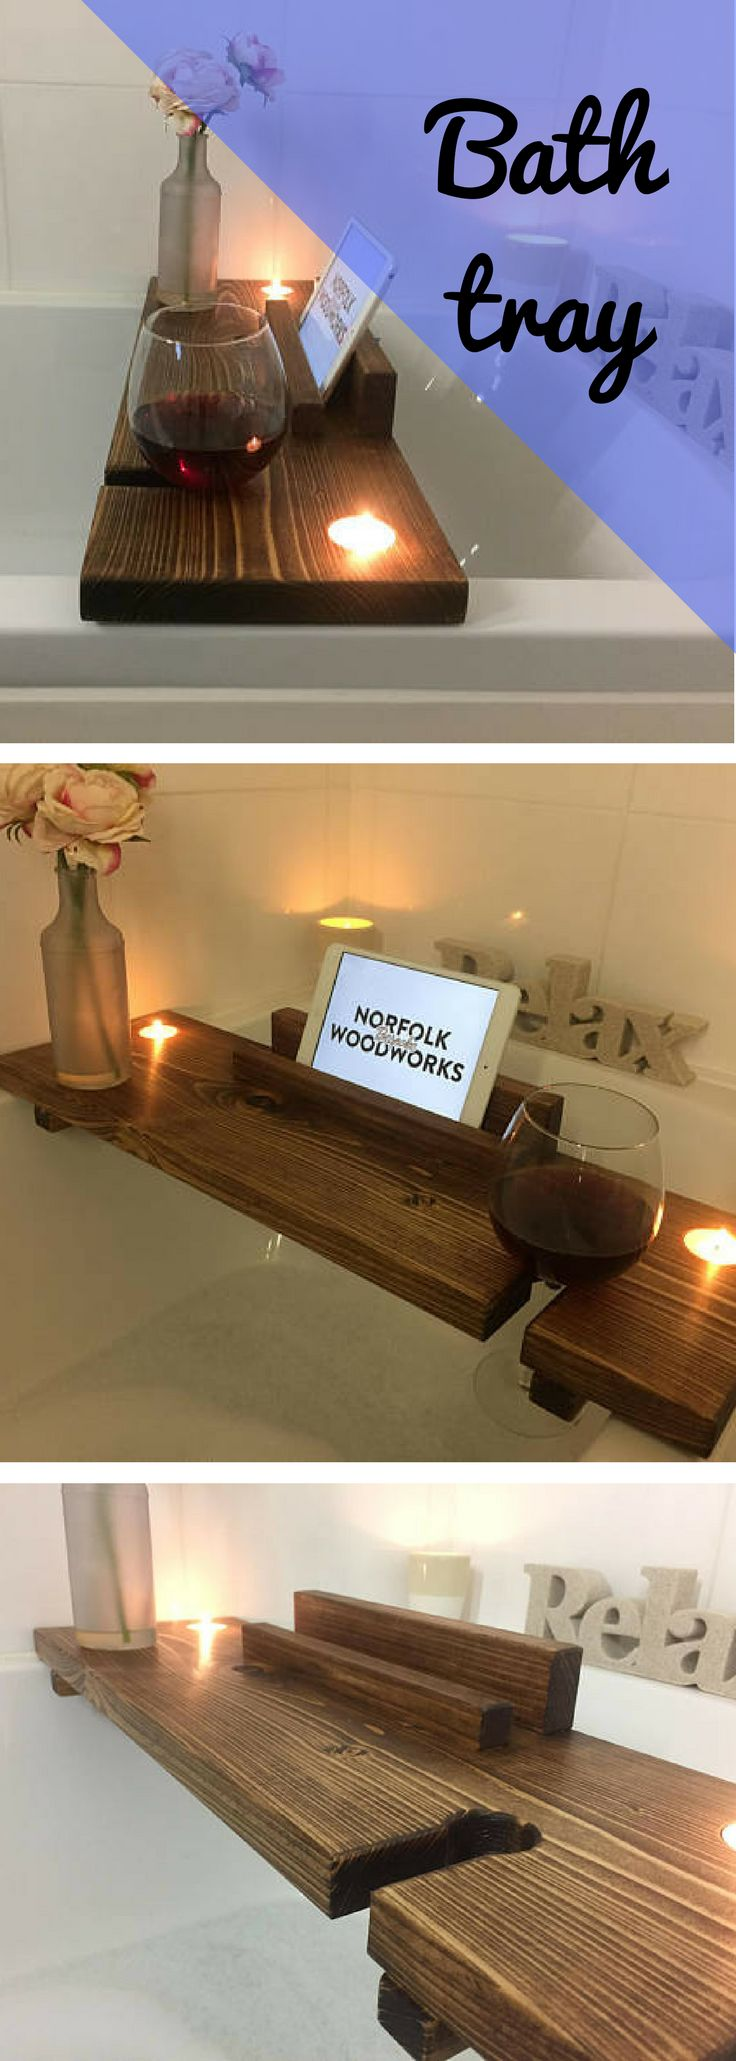 Wooden Bath Caddy - Wooden Bath Tray - Wooden Bath Board - Book Stand - Wine Glass Holder - Relaxation Wooden Bath Board - Bath Rack - Rustic Home Décor - Gifts for Her- Christmas Gift- Birthday Gift- Anniversary Gift - Gift Ideas- DIY Home #affiliatelink